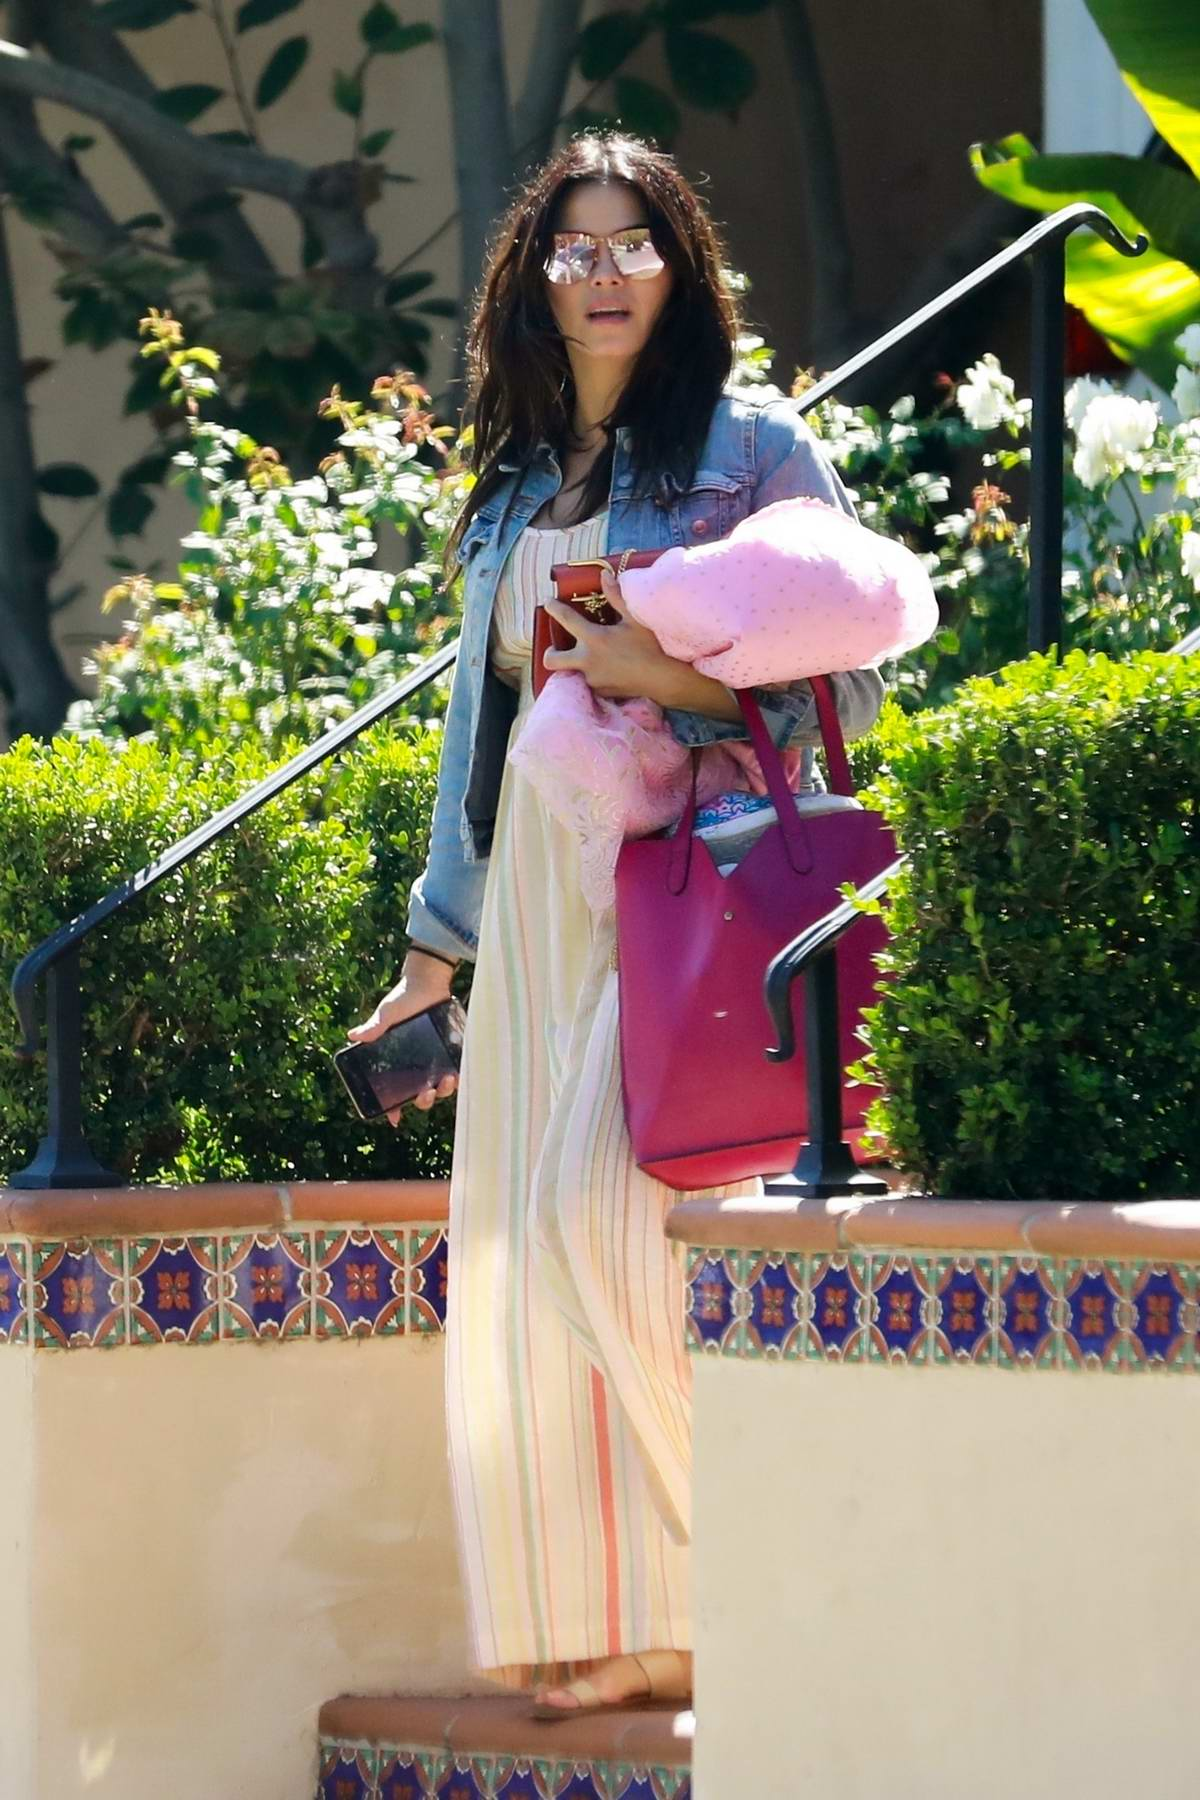 Jenna Dewan and Steve Kazee spotted as they go house hunting in Encino, California